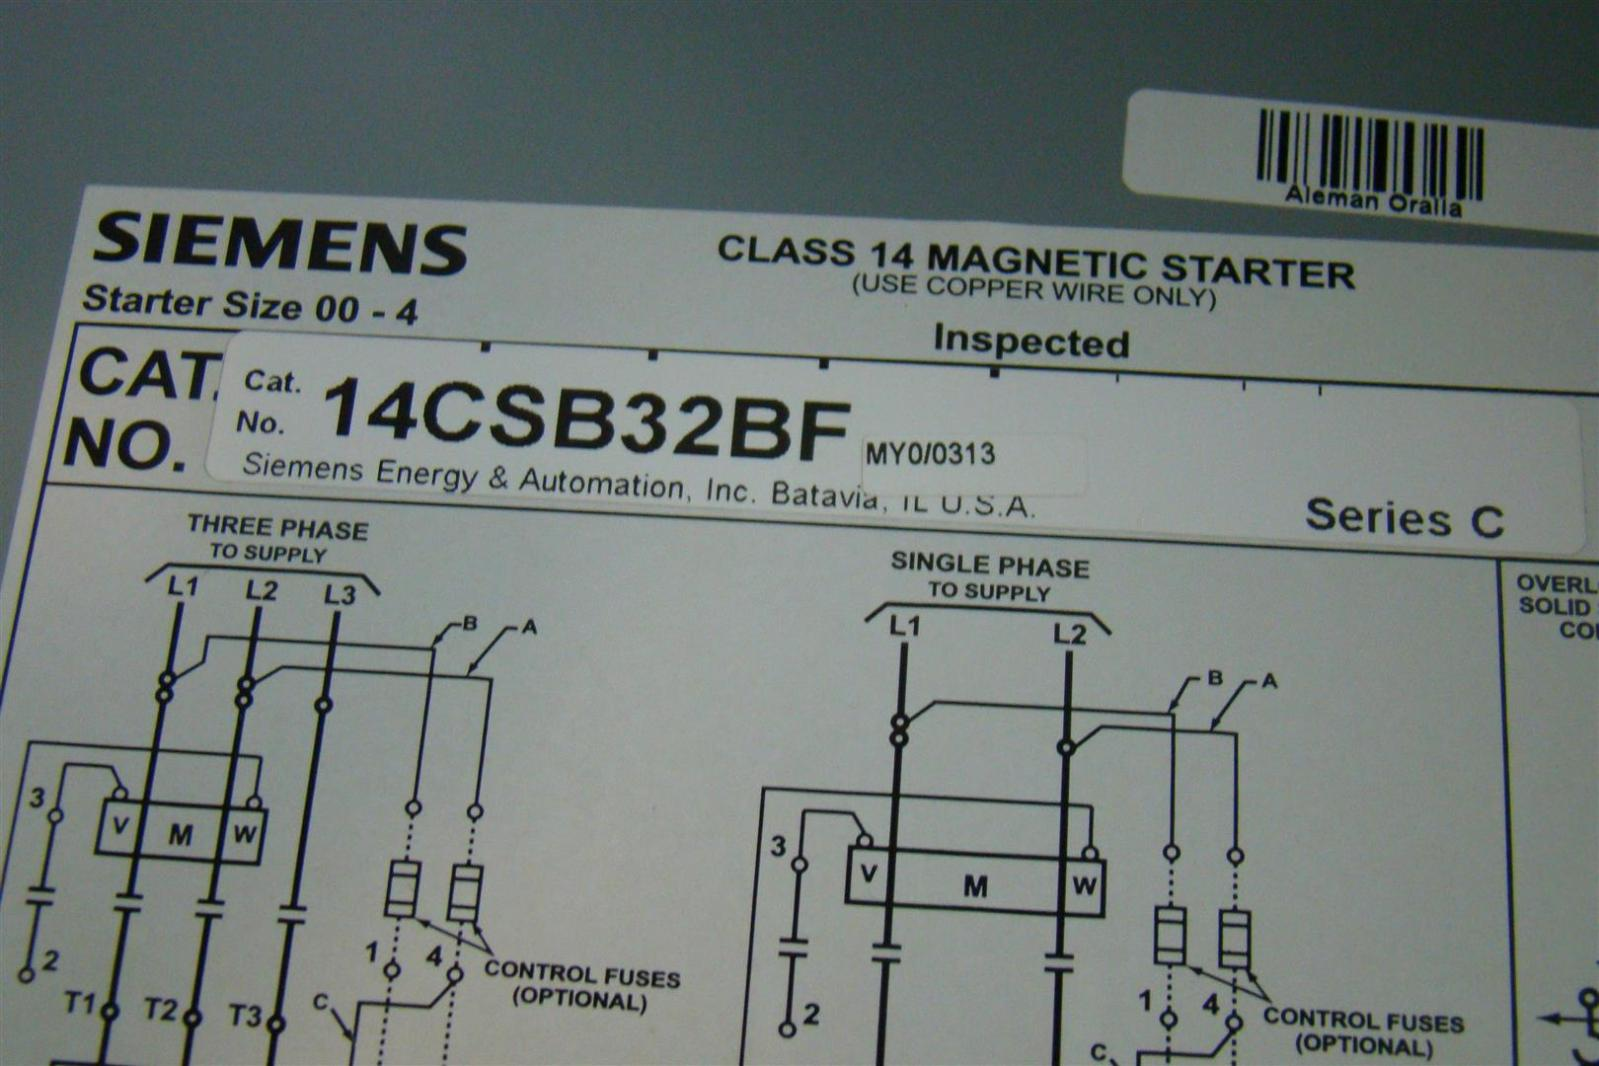 Siemens Washing Machine Wiring Diagram Electrical Switch Guide Motor Diagrams Age164 Heavy Duty Starter Class 14 Magnetic 3ph 200